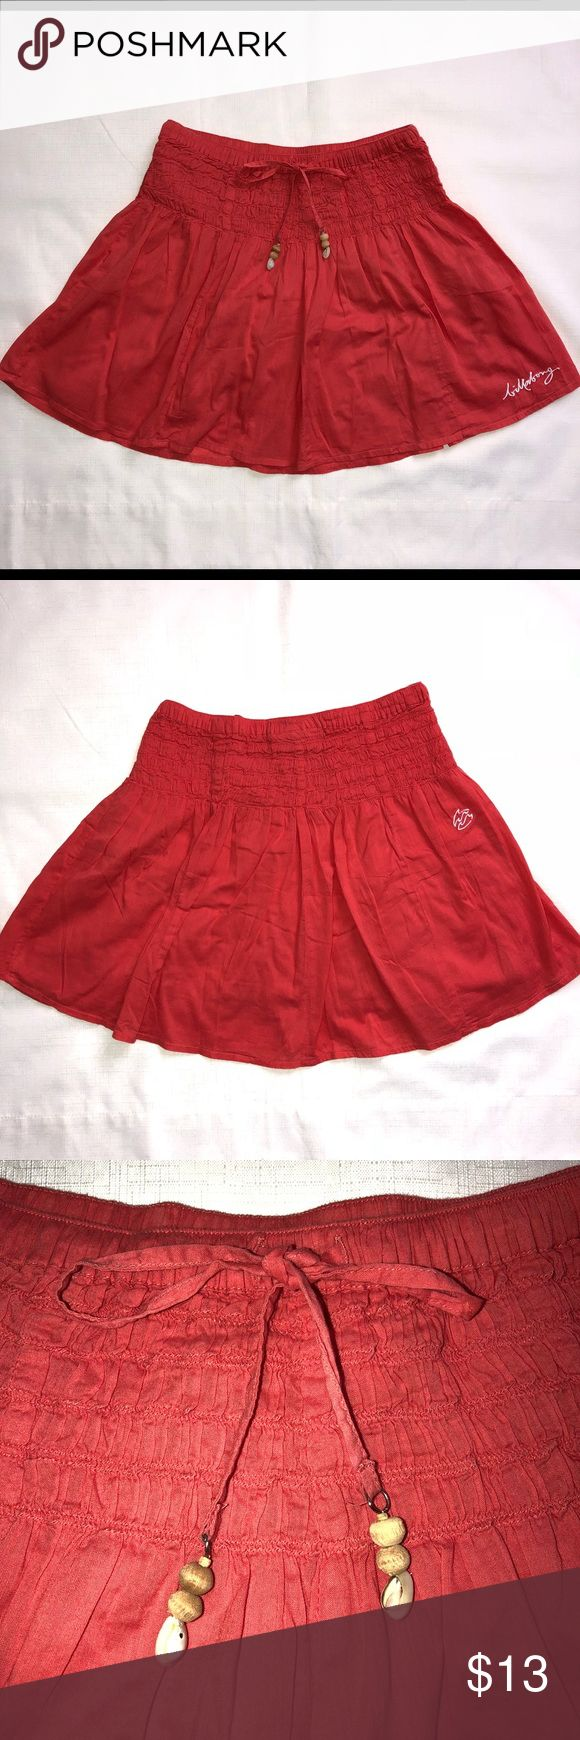 """Billabong Orange Mini Skirt Size S 100% Cotton  Elastic waistband, Fully Lined Waist 24/28"""" Length 14"""" Used Few Times, in great condition  **Broken Shells** Tag Size based on UAE Sizing Billabong Skirts Mini"""